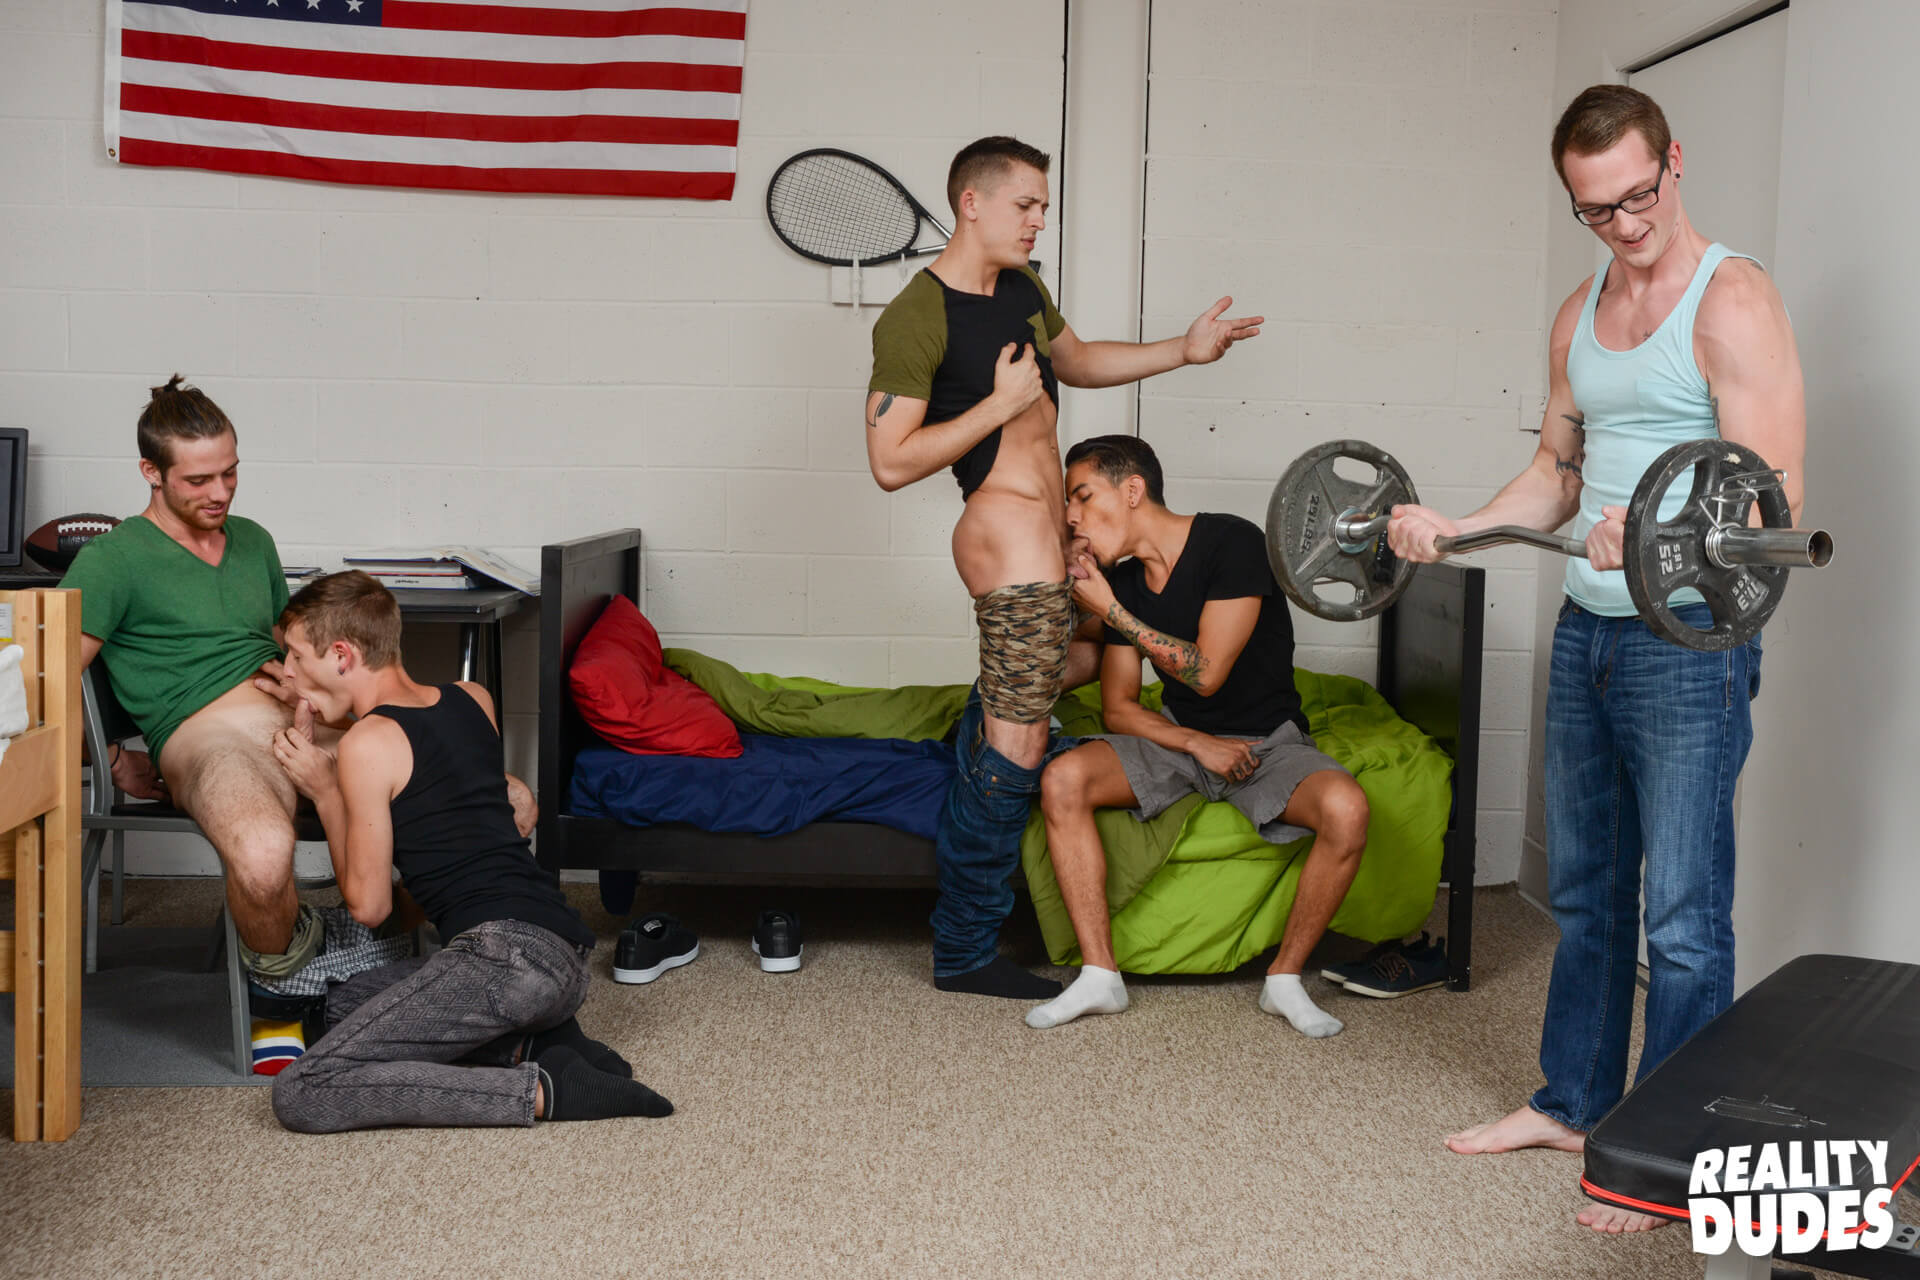 reality dudes dick dorm just us guys gay porn blog image 21